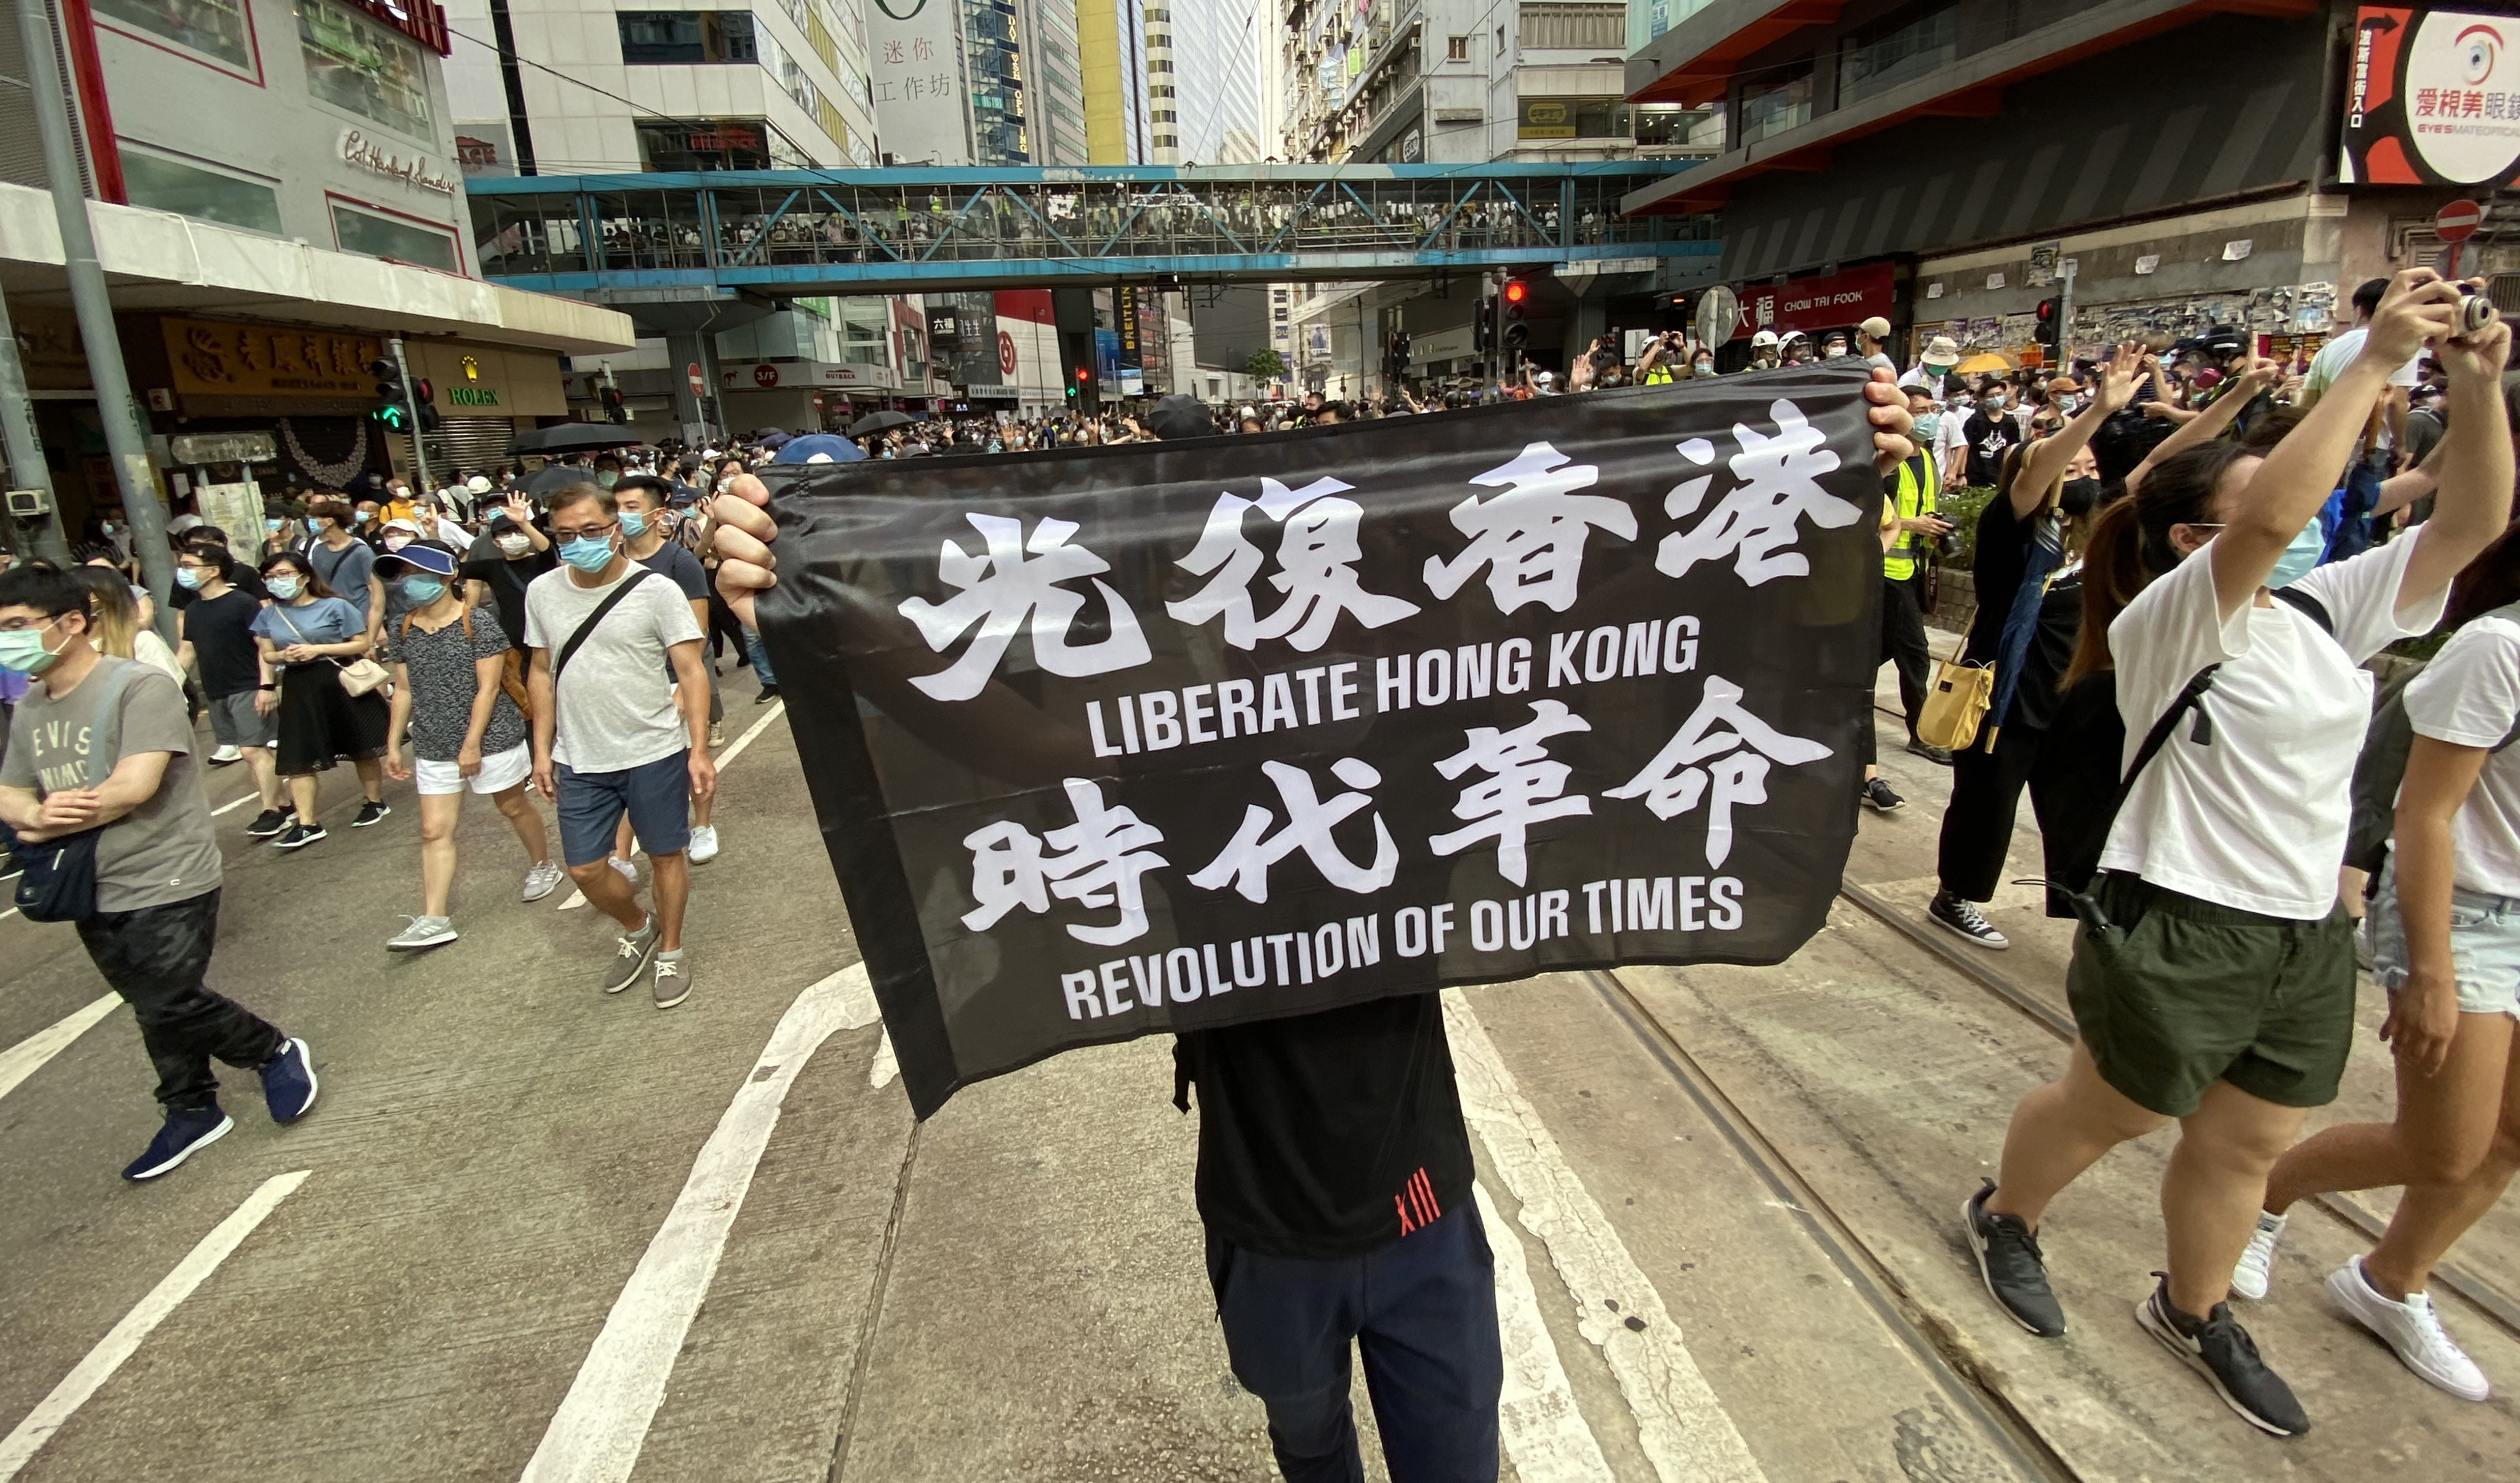 Hong Kong court convicts human rights activist under national security law